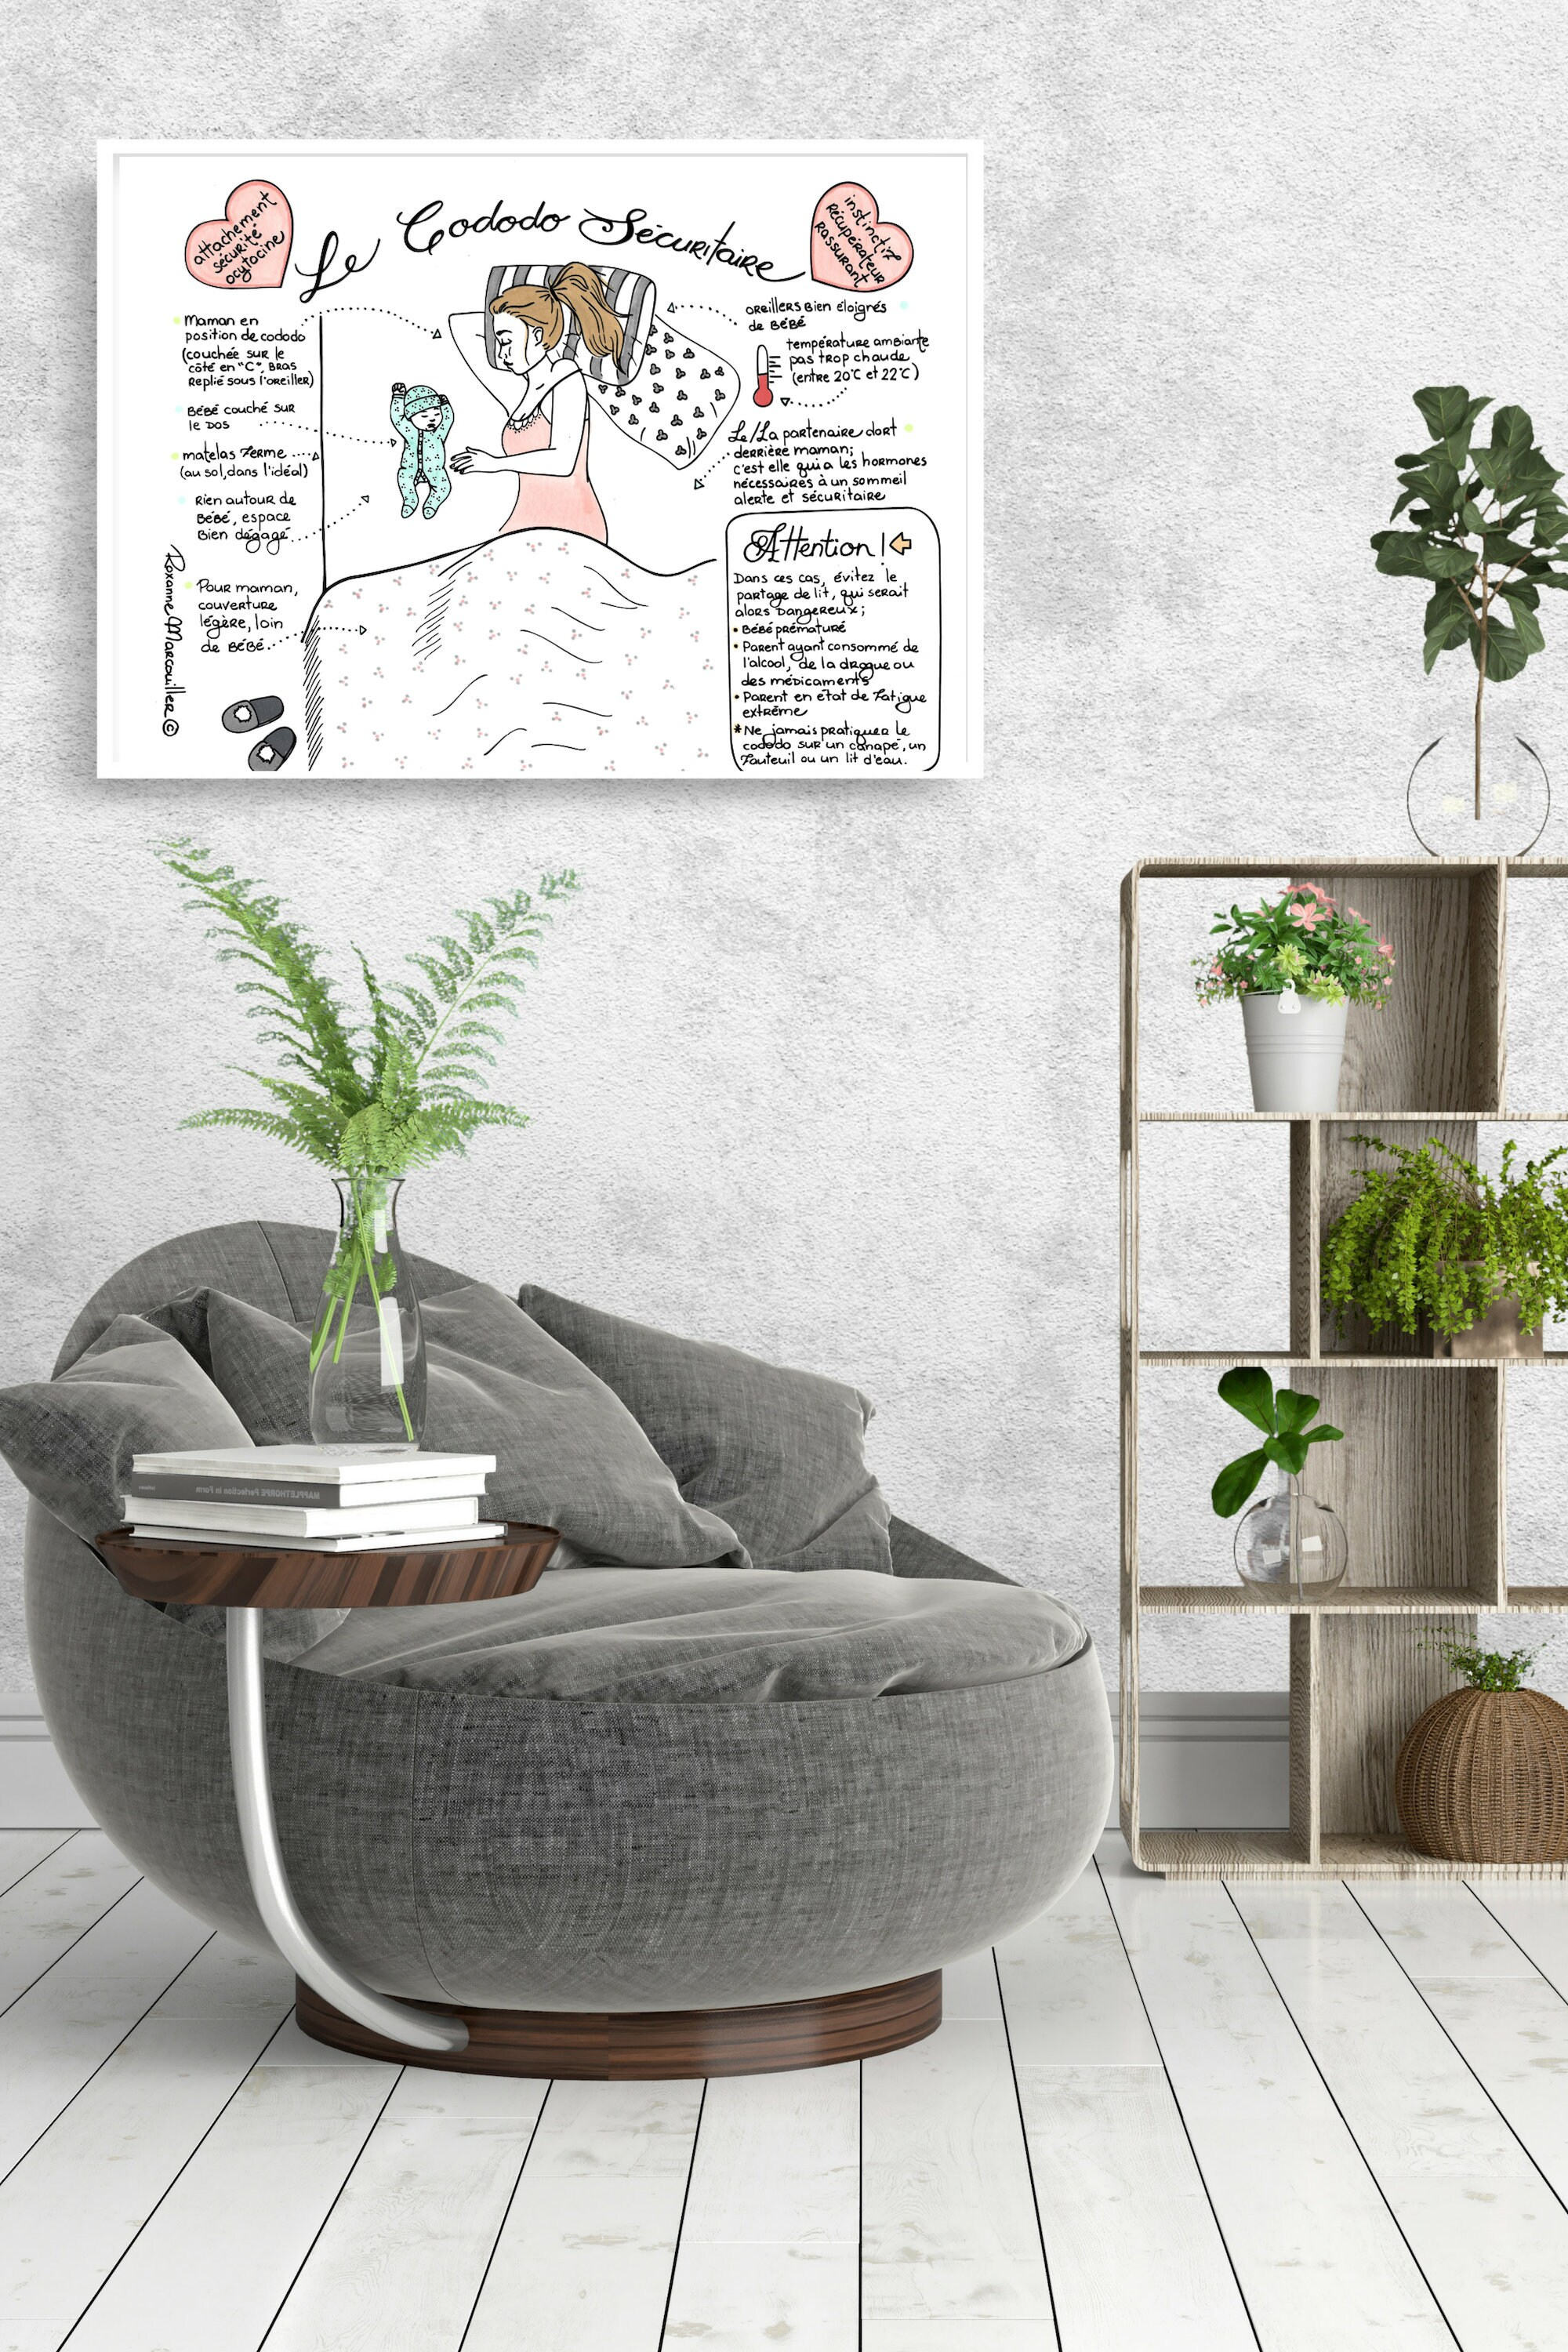 Fauteuil Kind Prenatal.Pre Orders Large Cododo Poster Clinic Birth Room Midwife Etsy